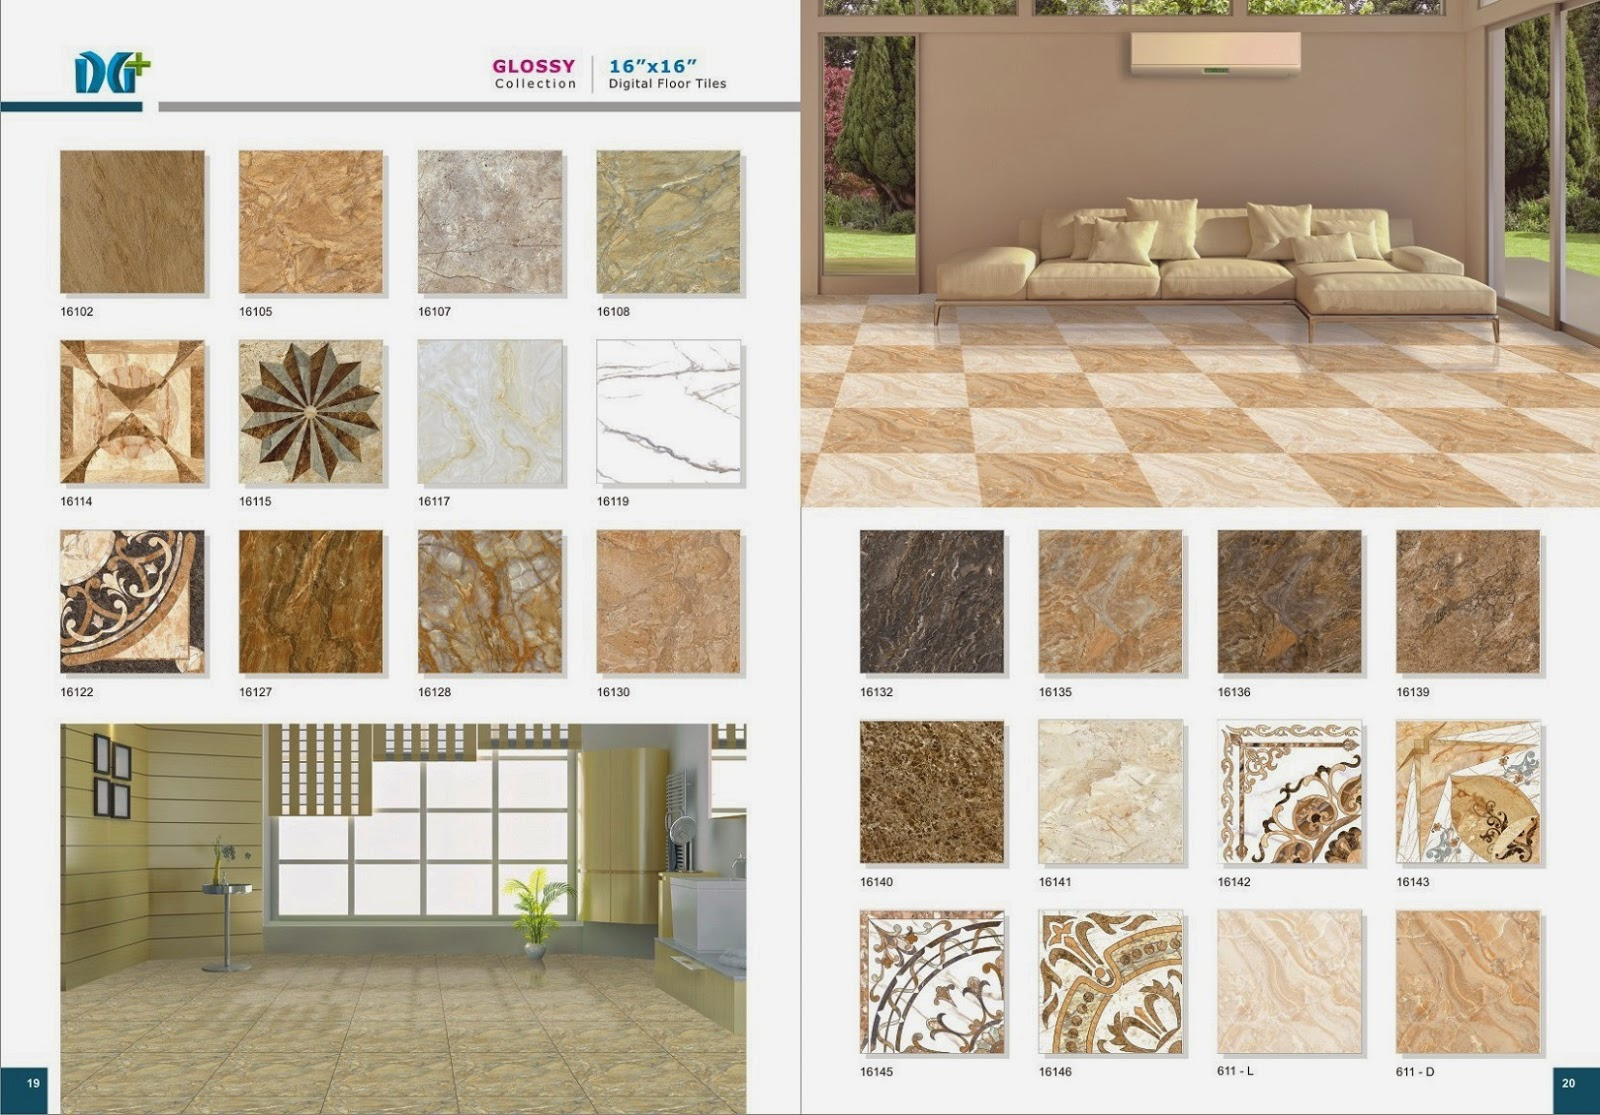 Ceramic tiles in india images tile flooring design ideas ceramic tiles in india image collections tile flooring design ideas ceramic tiles in india choice image dailygadgetfo Gallery